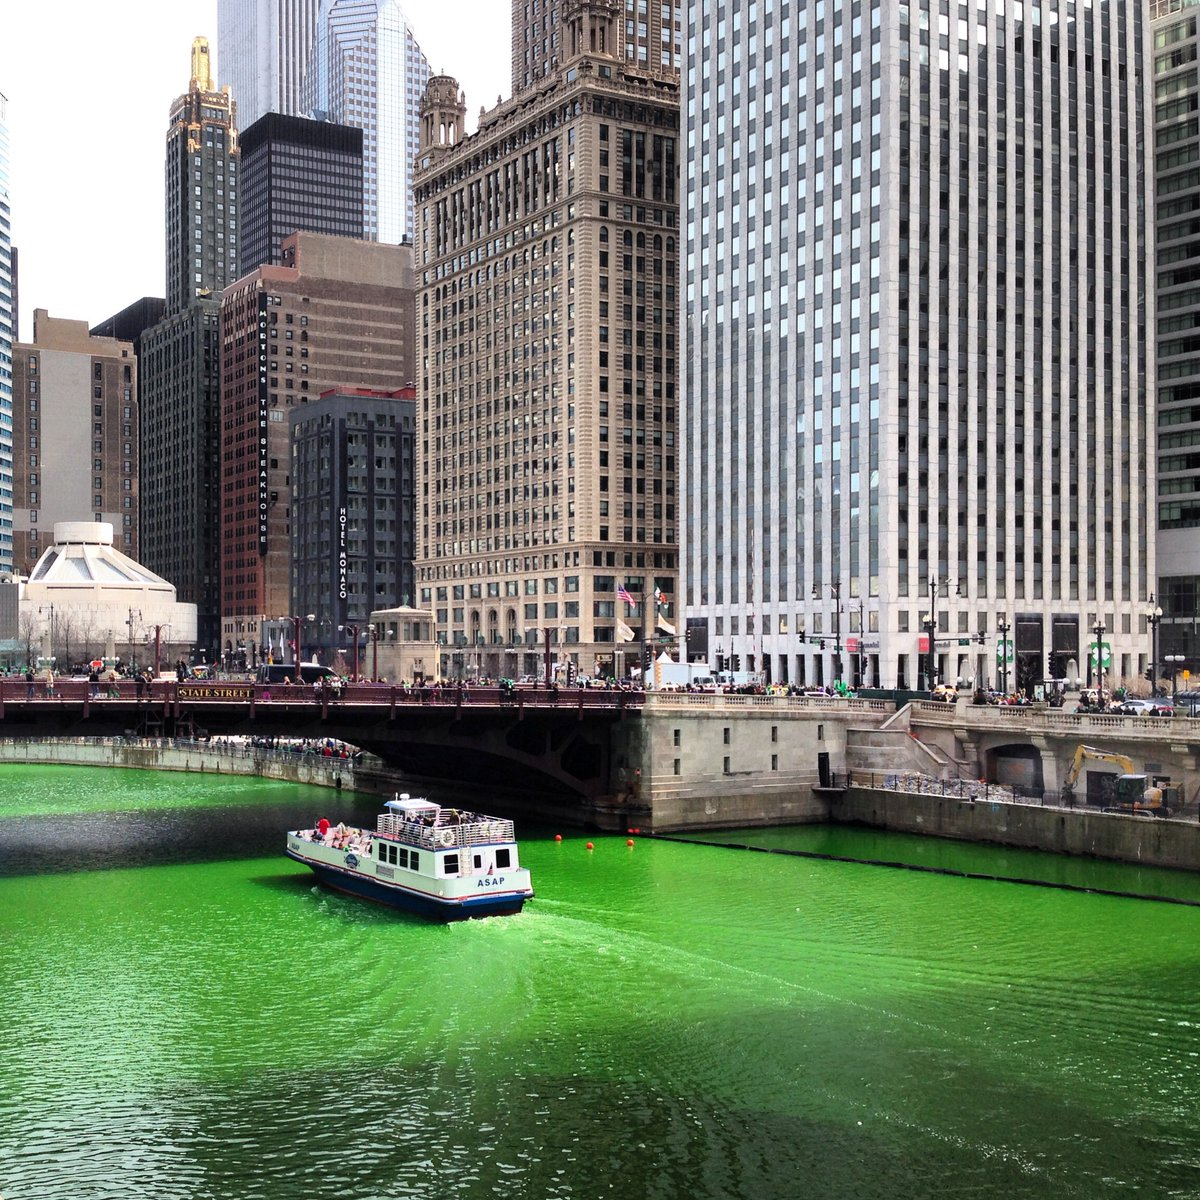 We're ready! The Chicago River, mimicking the beauty of the Irish Sea, is officially green! https://t.co/pi4QybNUJD